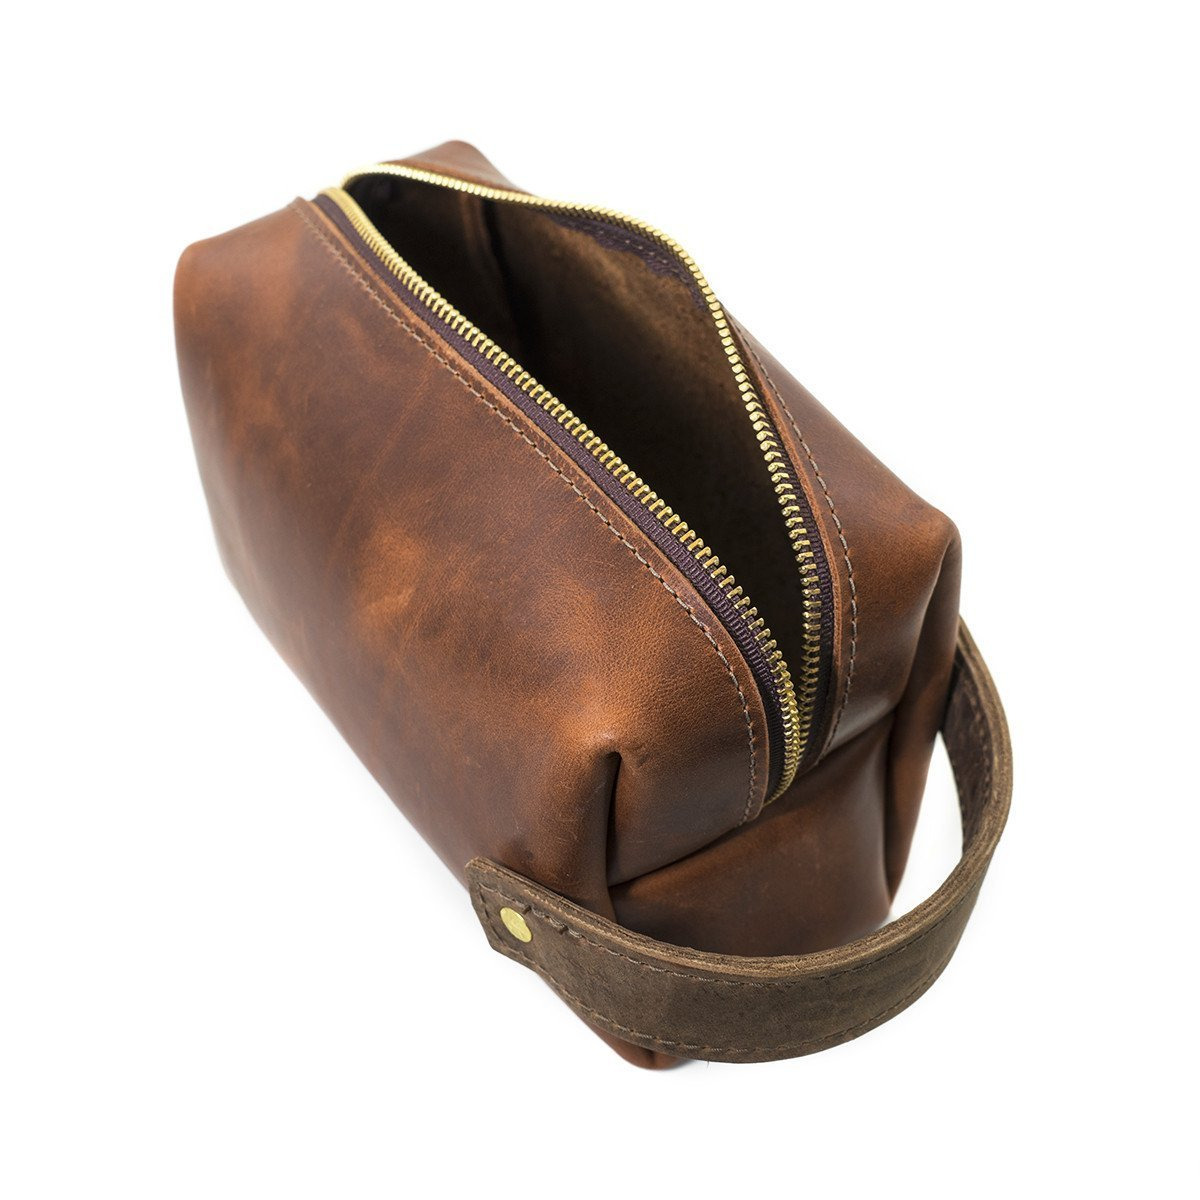 high-line-three-leather-pouch-saddle-leather-open-view_1_55004961-6d2d-4473-a9a1-1284017e767b_1280x1280.jpg